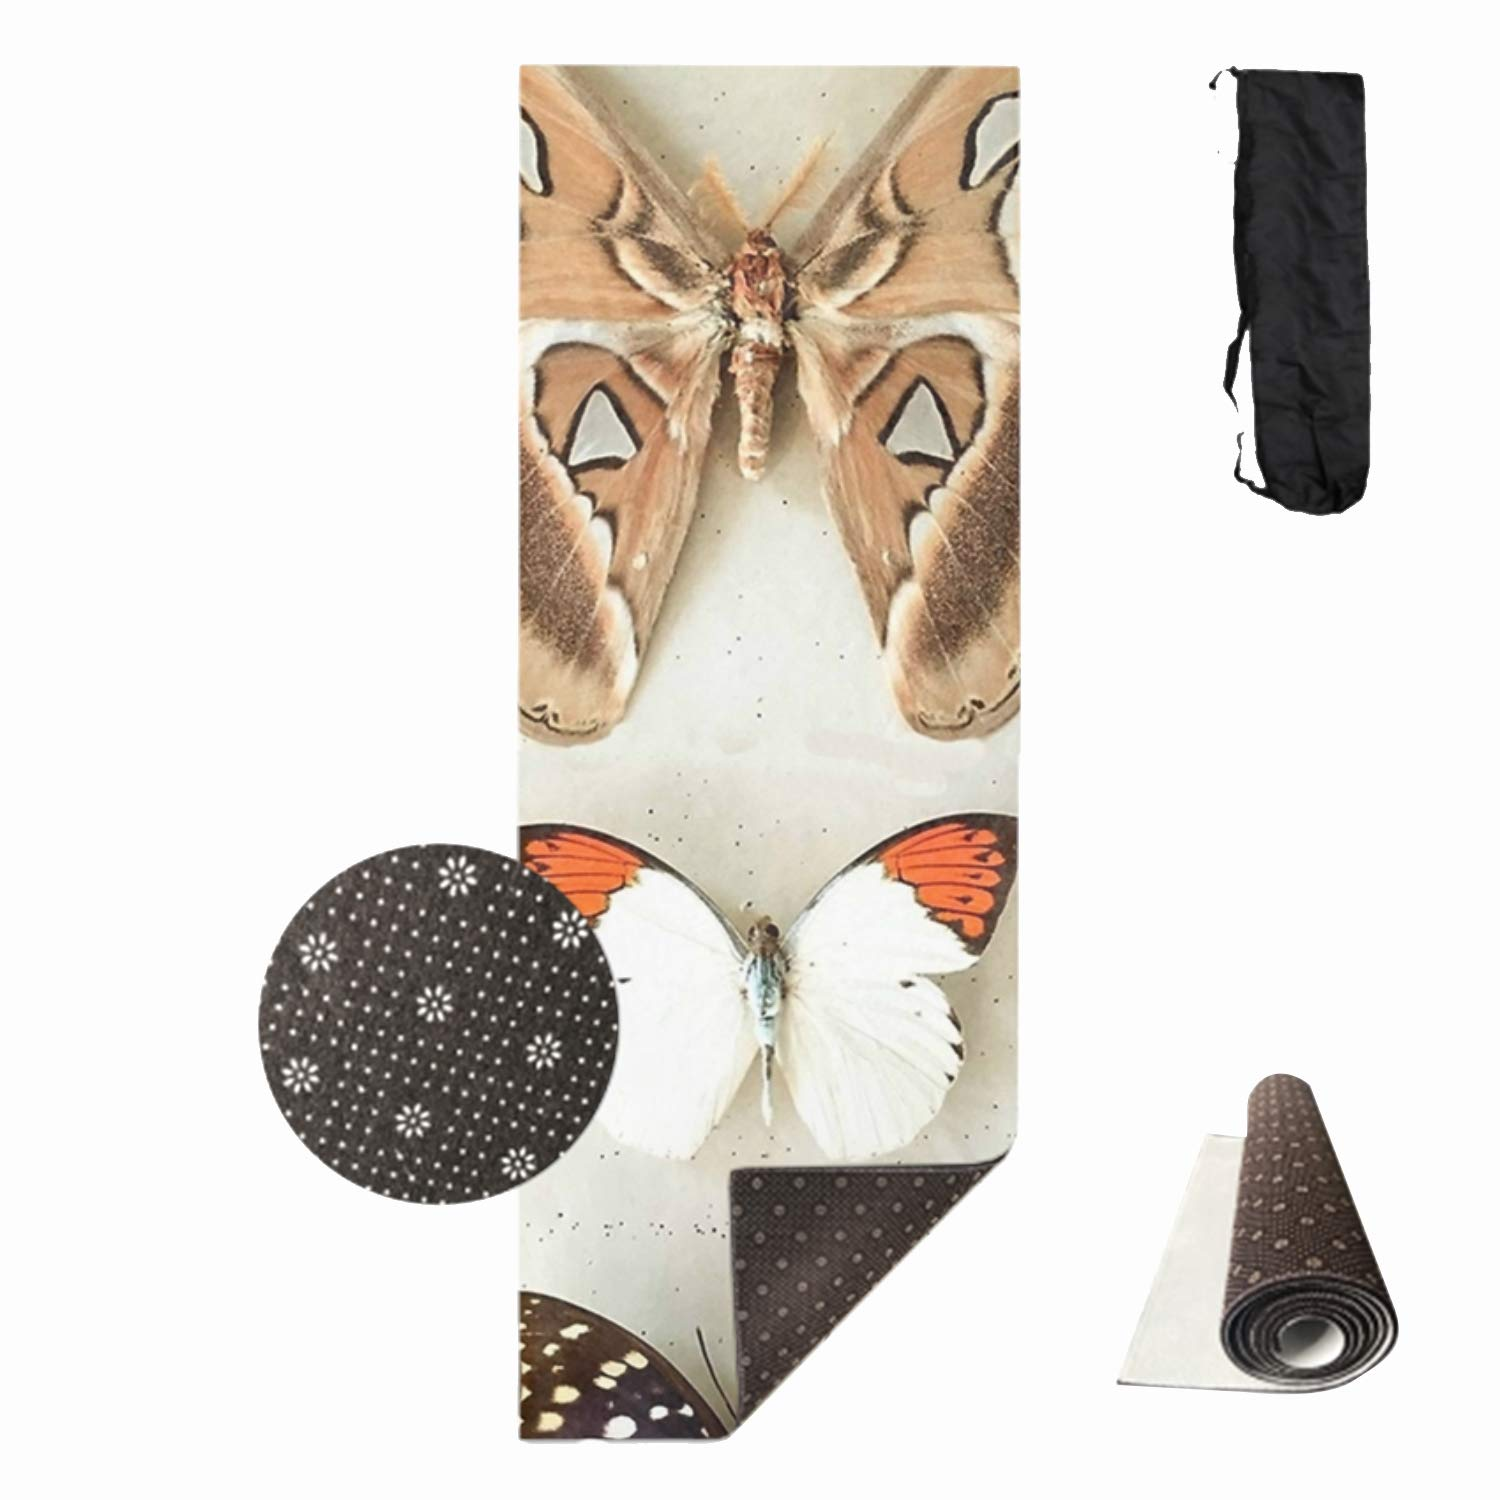 HHNYL Non Slip Eco-Friendly Floor Pilates Exercise Butterflies and Moths Mat for Yoga, Workout, Fitness with Carrying Bag 6mm